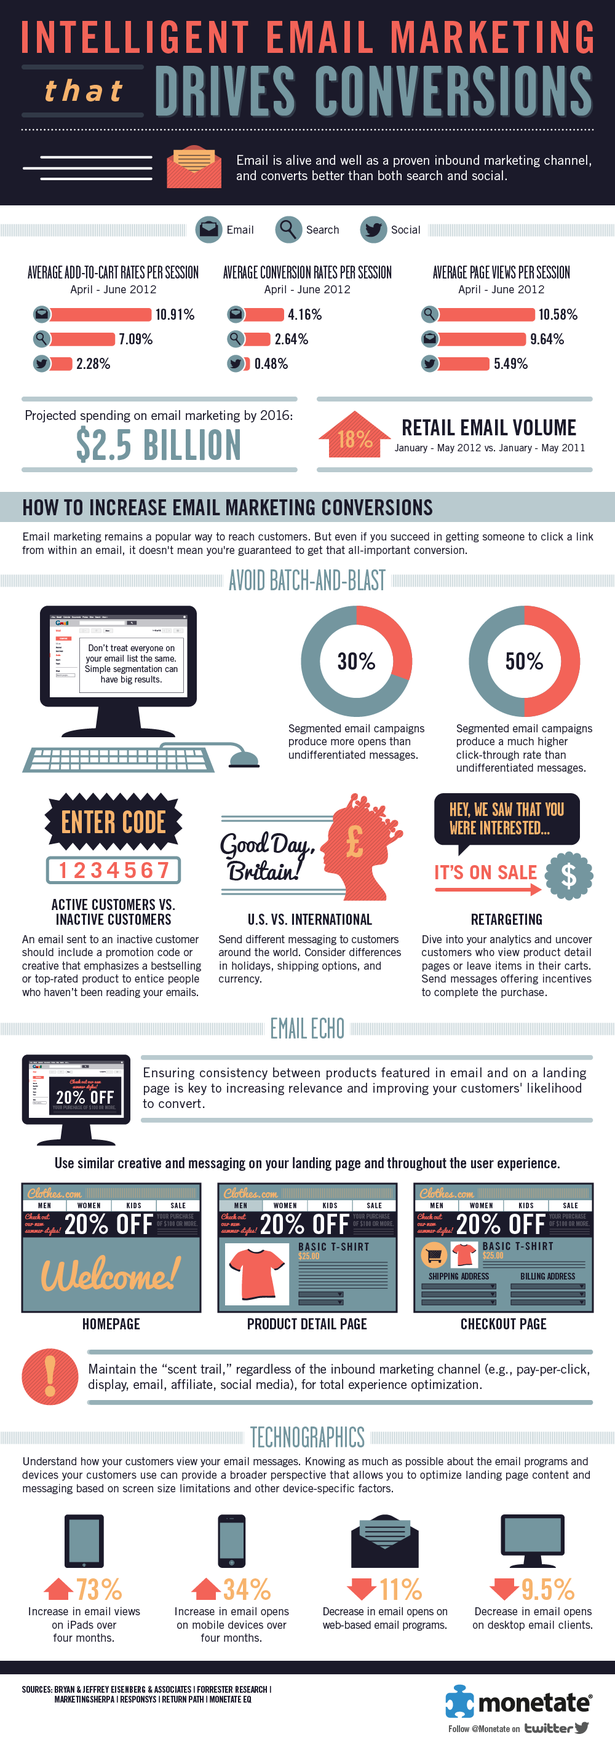 intelligent email marketing that drives conversions #infographic